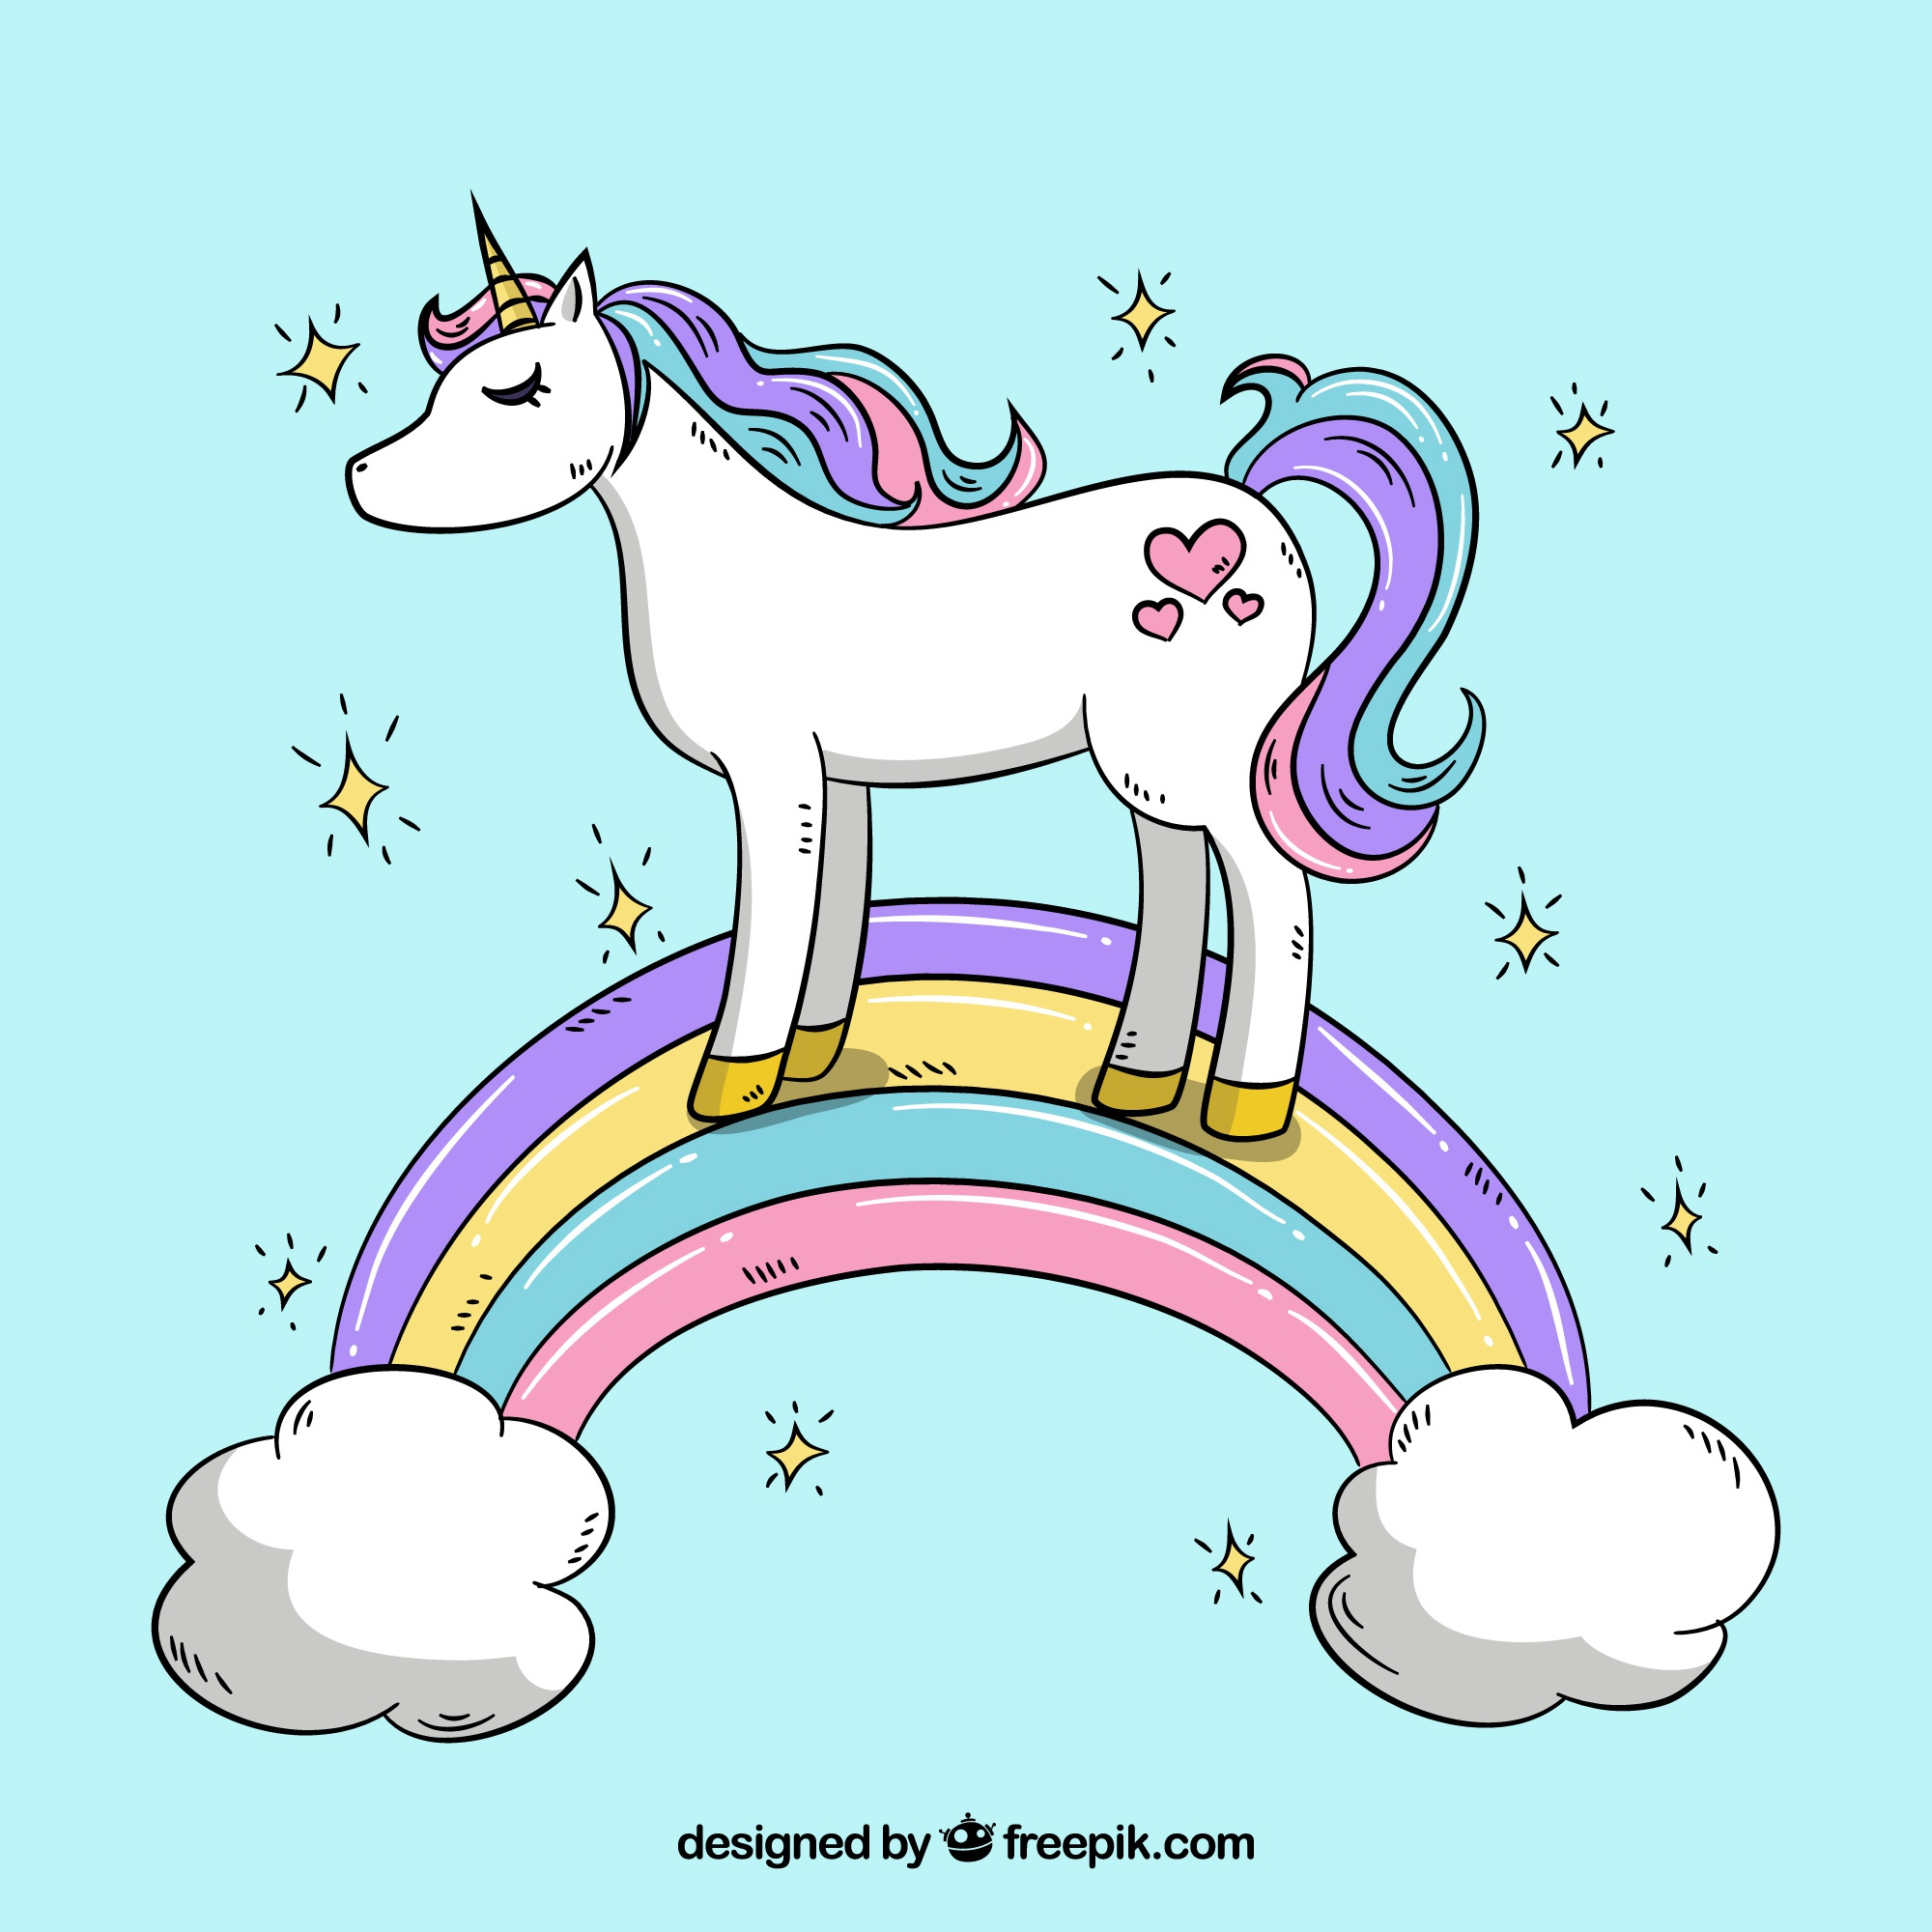 Unicorn background in a rainbow with clouds